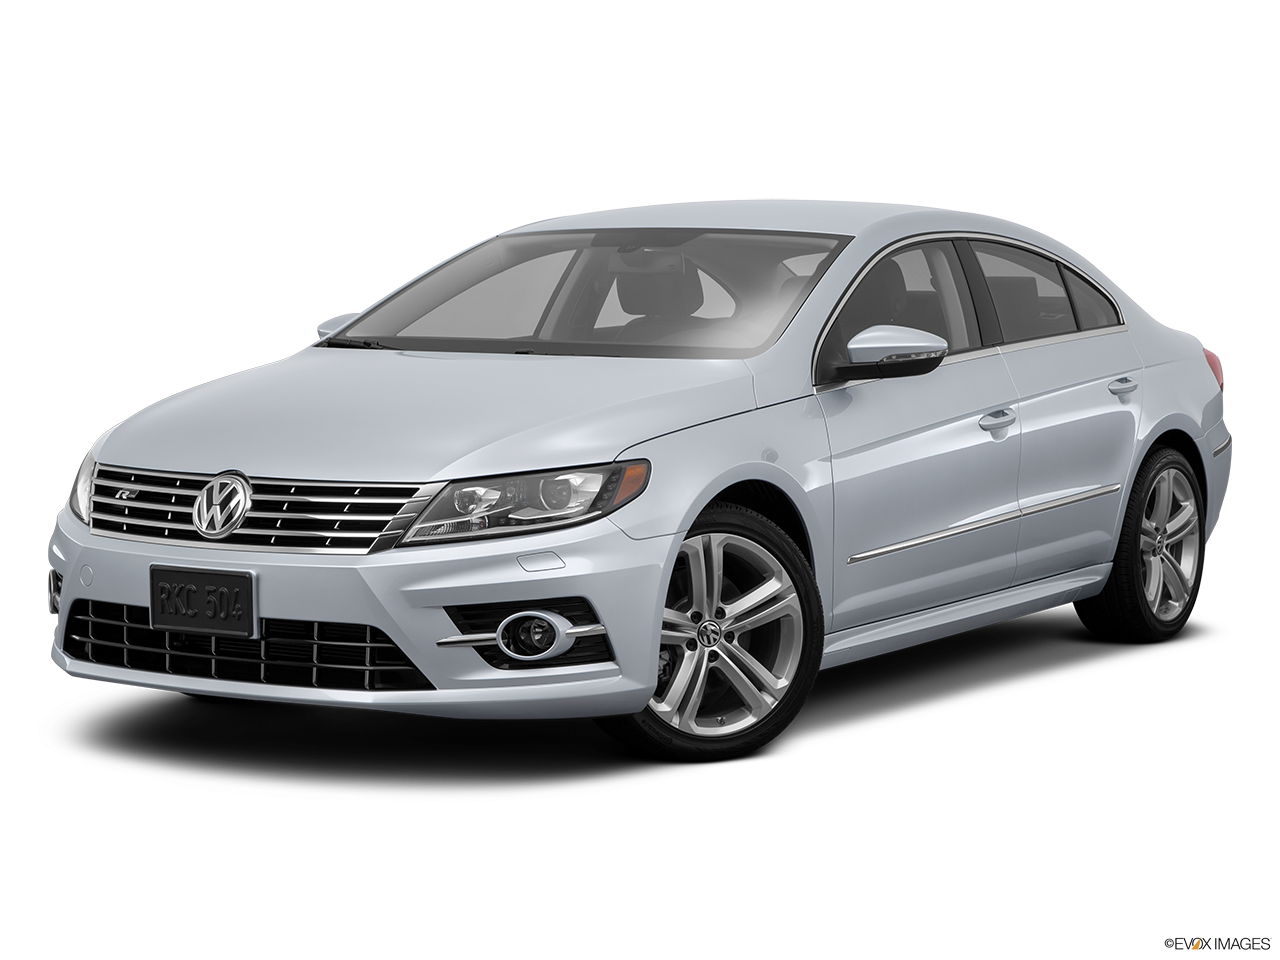 2015 volkswagen cc dealer serving nashville hallmark volkswagen. Black Bedroom Furniture Sets. Home Design Ideas